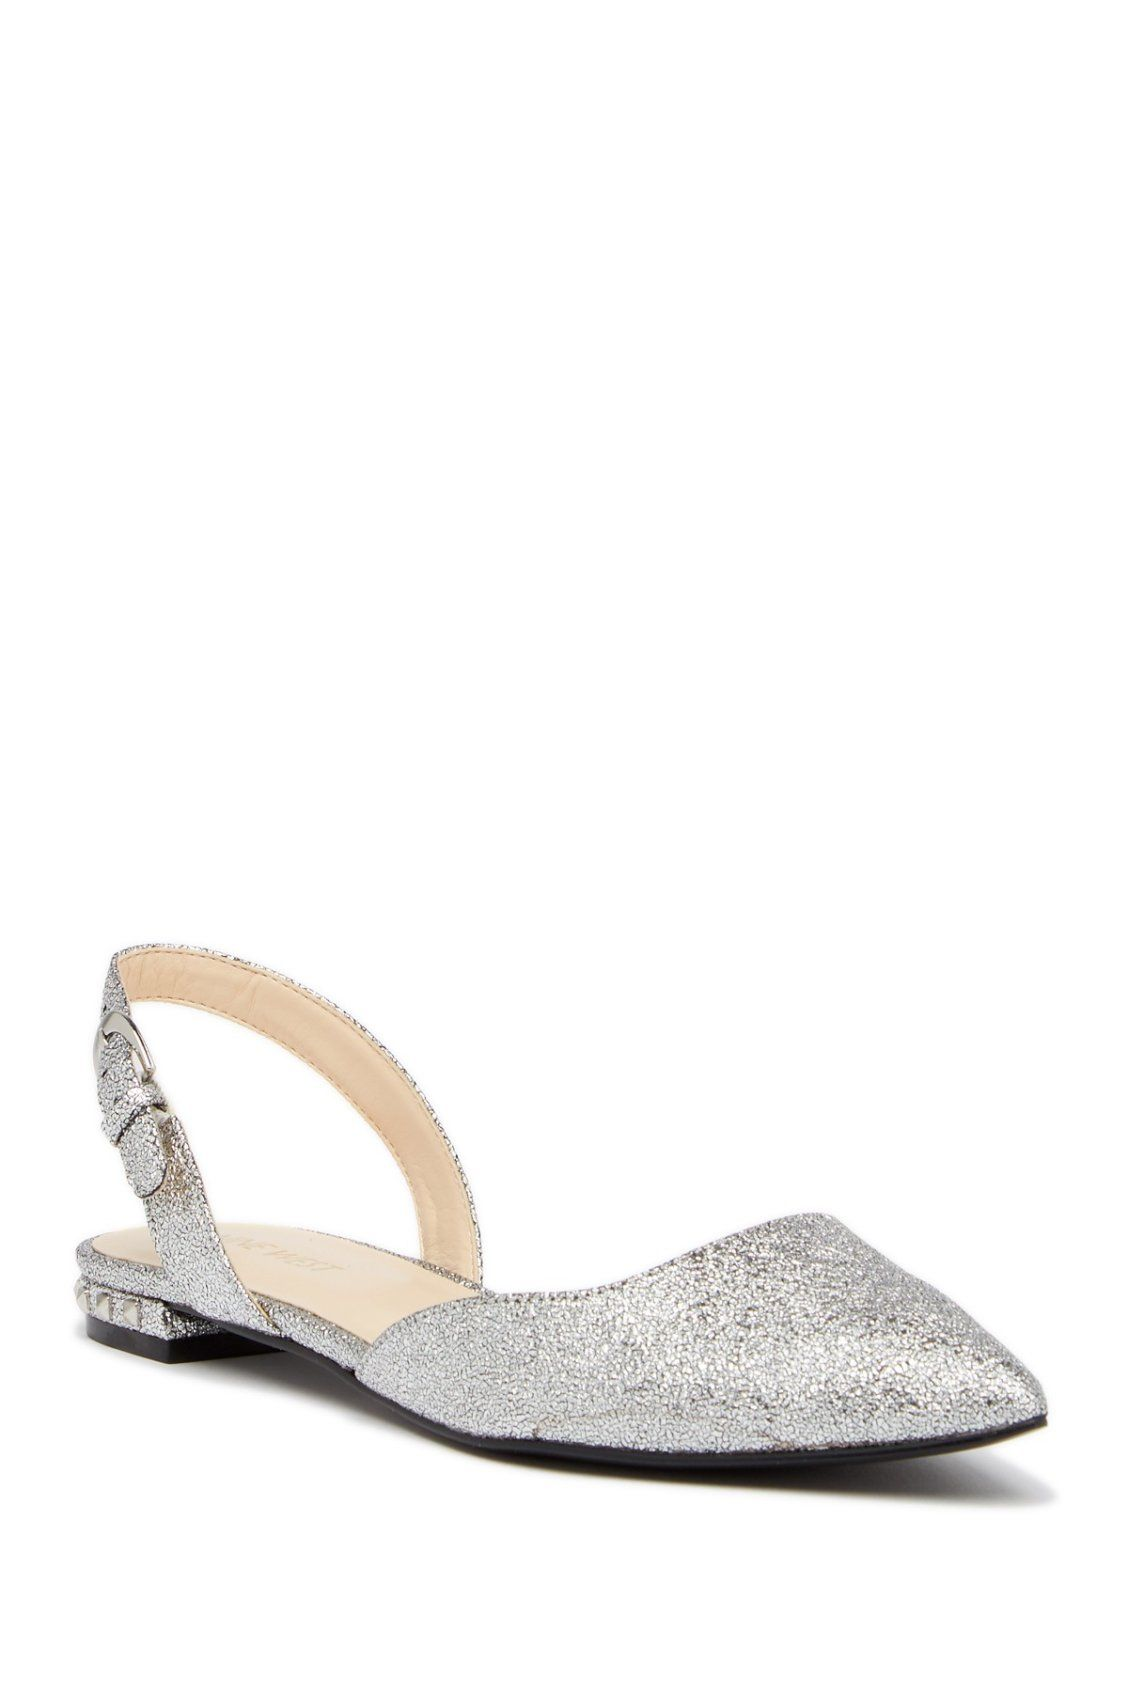 Stand Out In These Silver Nine West Althoff Slingback Flats Slingback Flats Slingback Flats